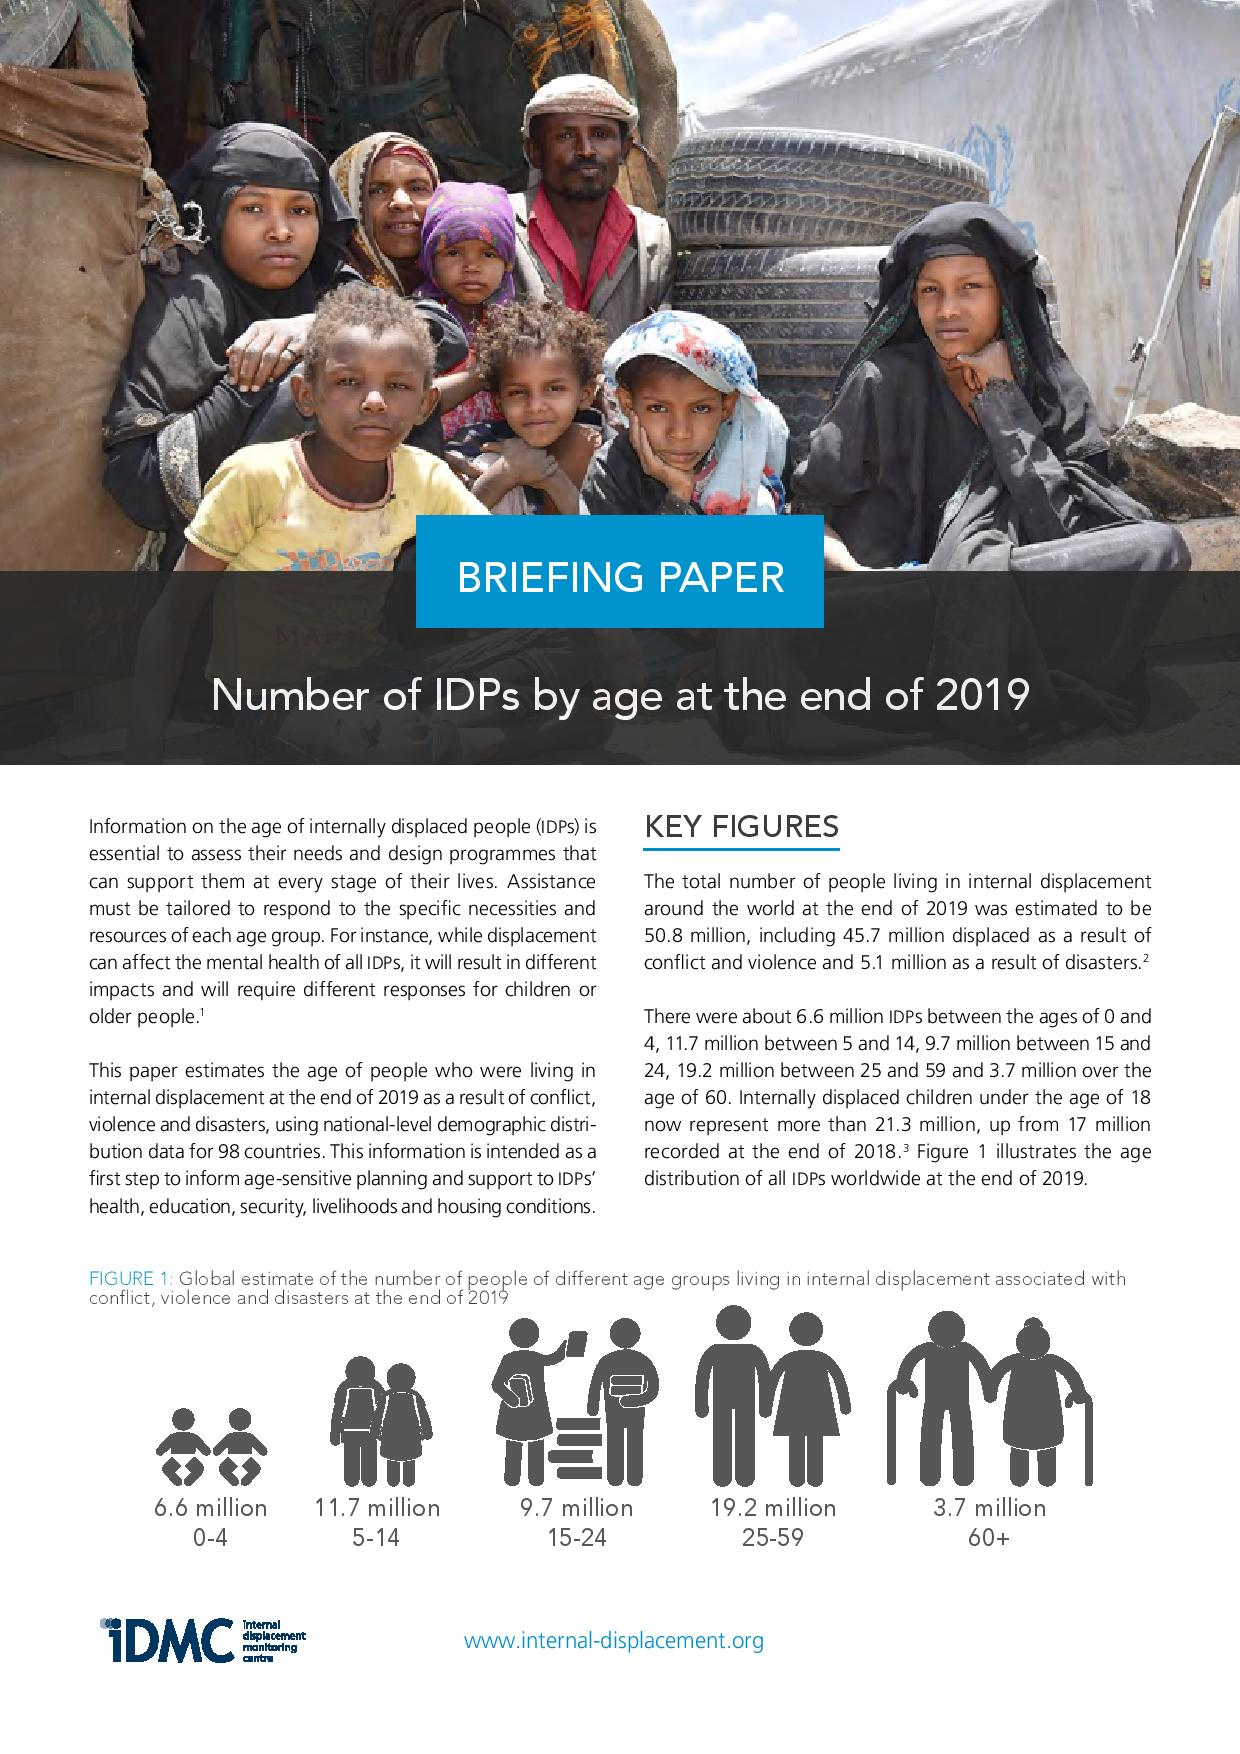 Number of IDPs by age at the end of 2019